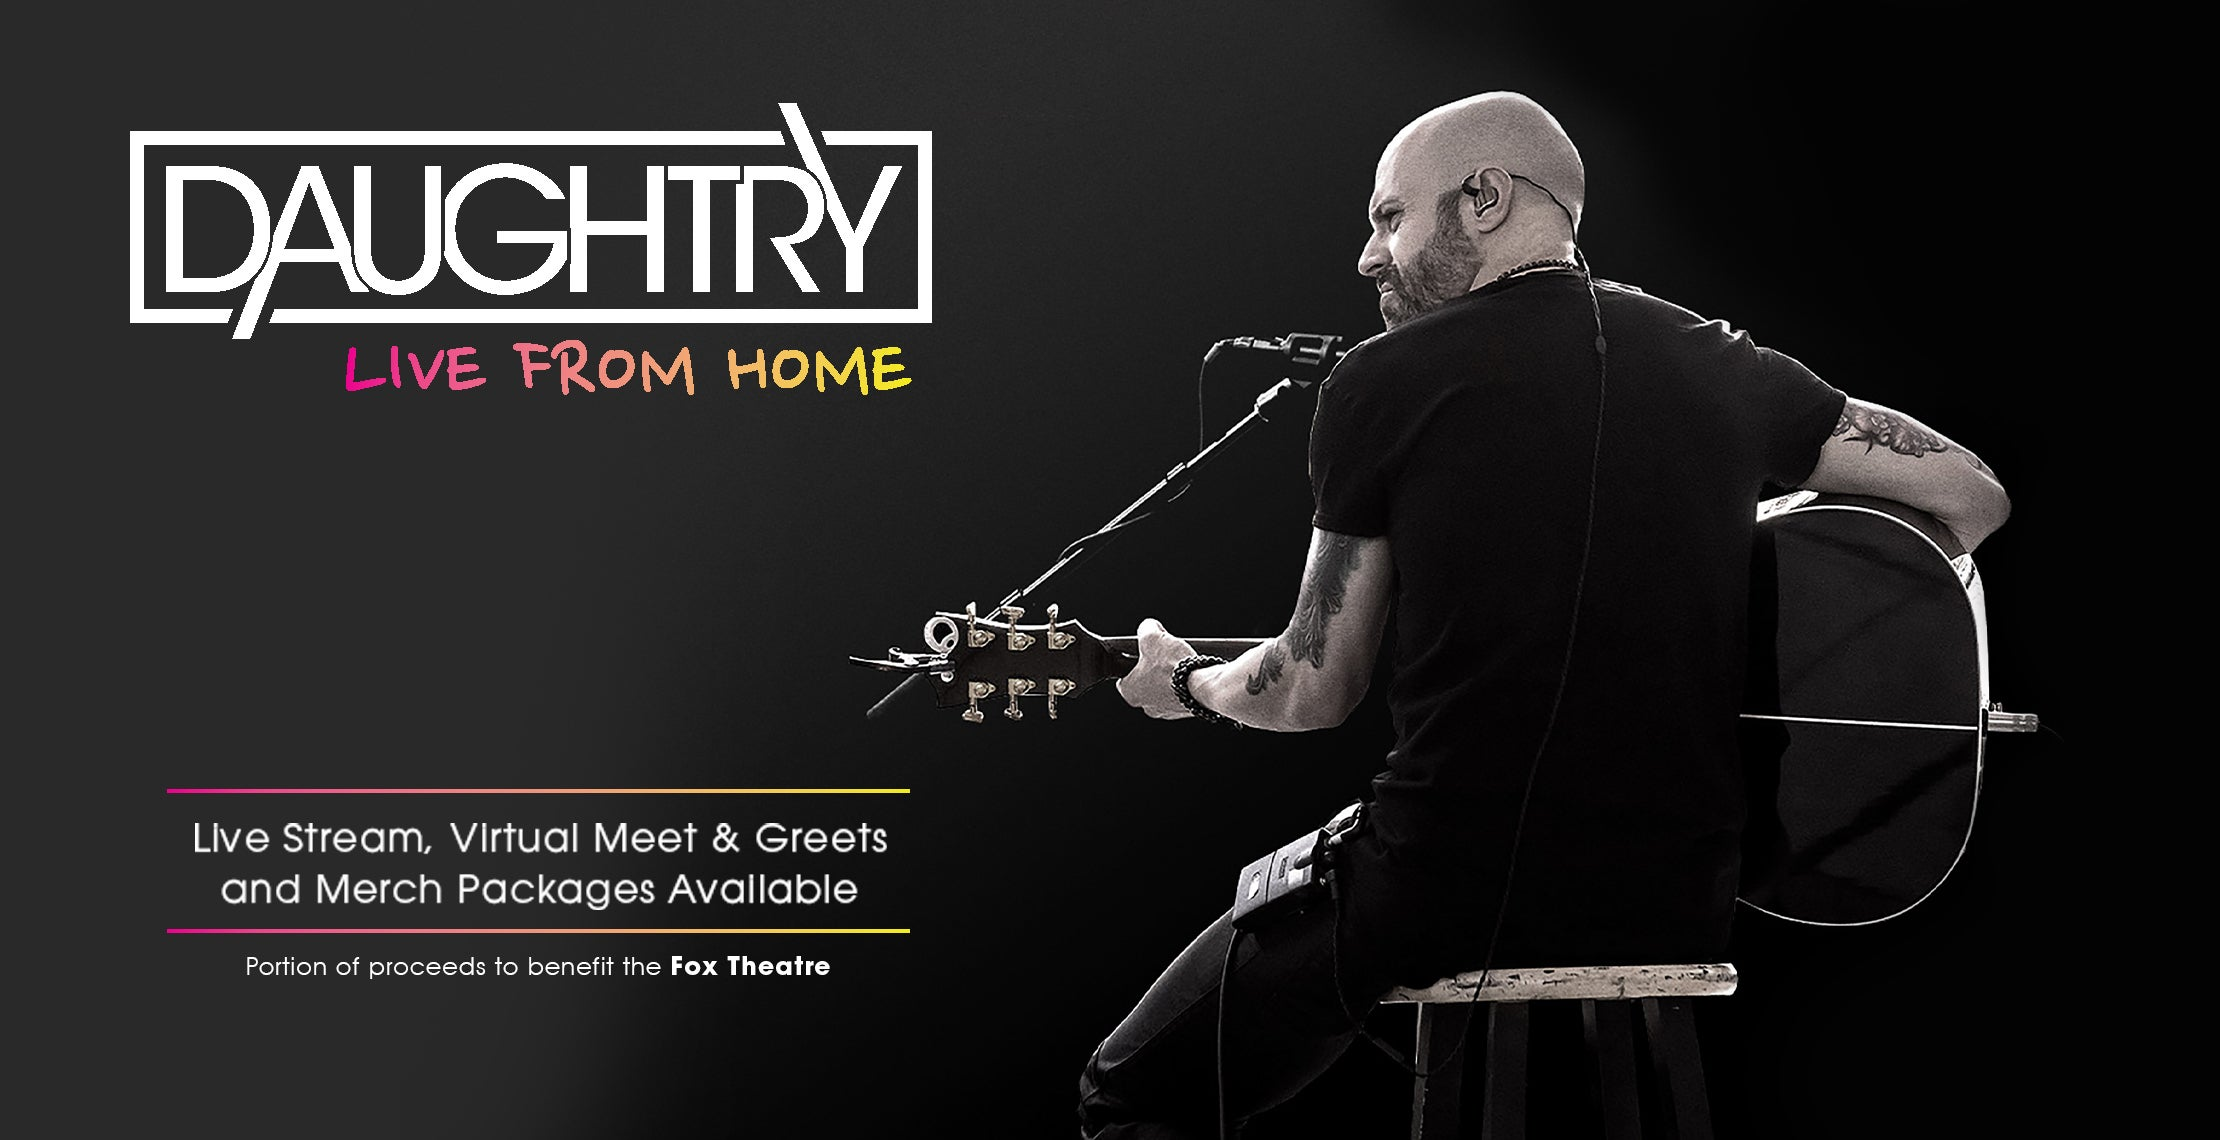 DAUGHTRY LIVE FROM HOME TOUR